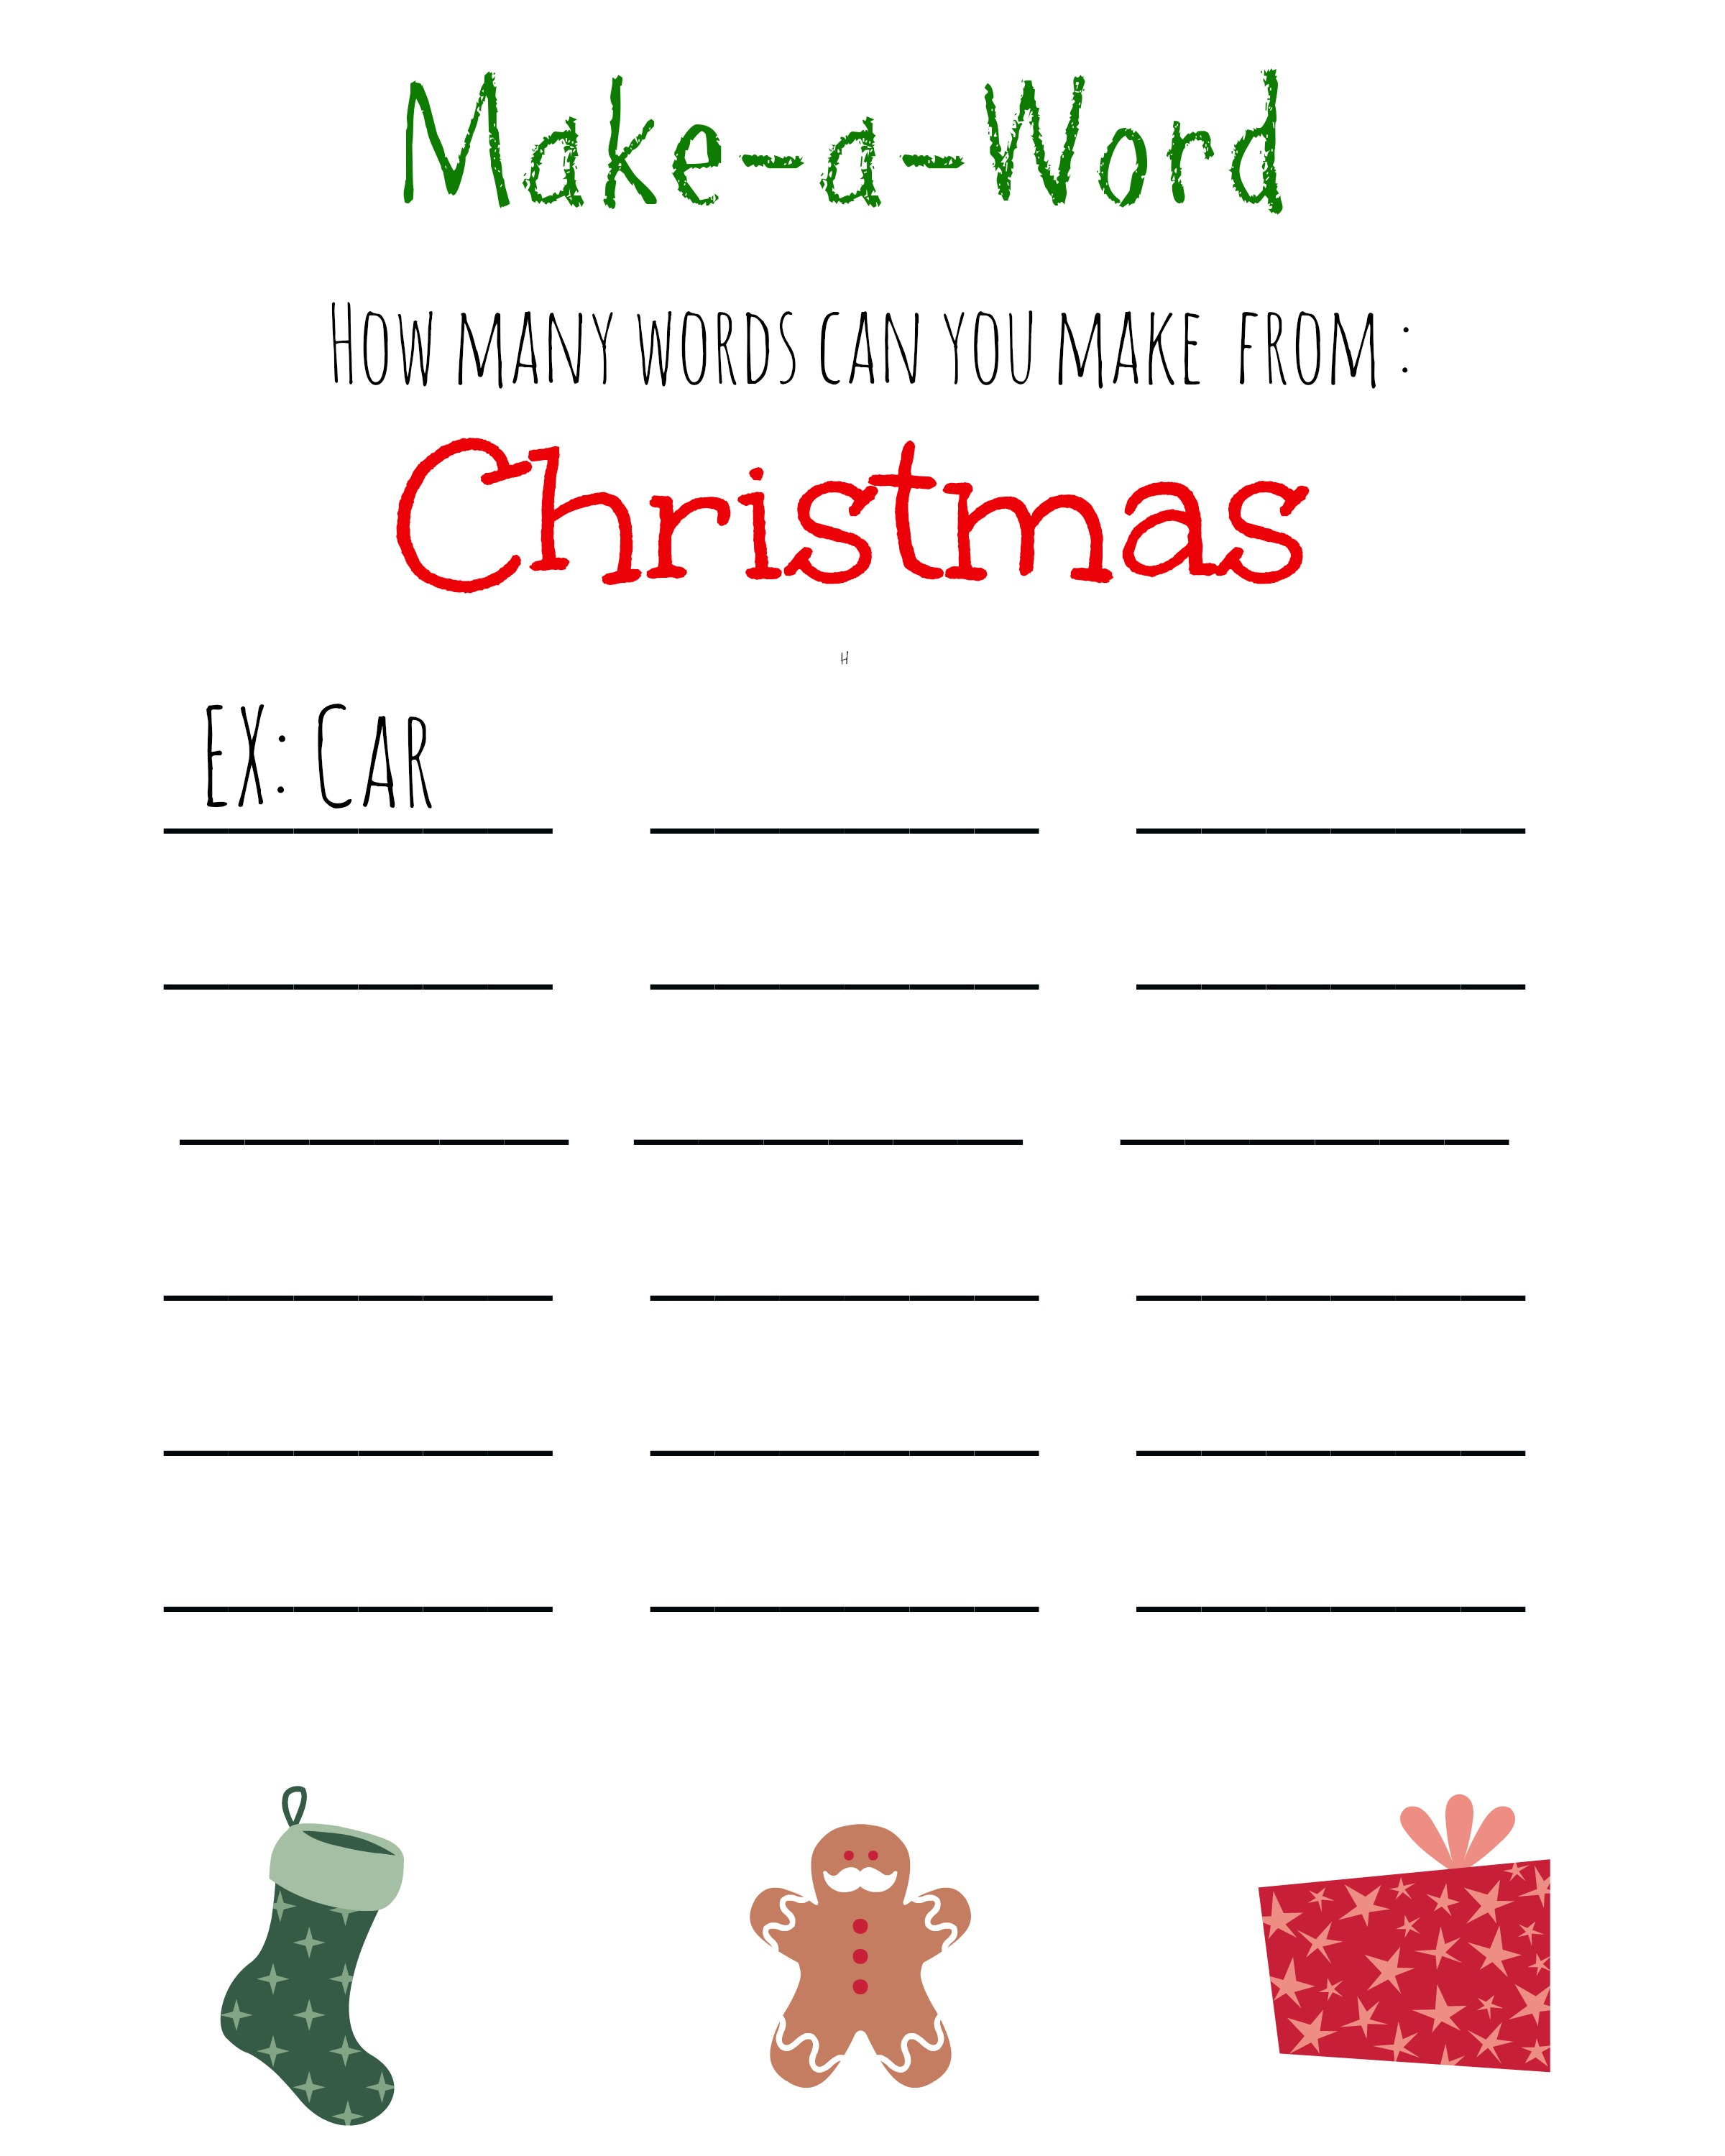 Christmas Games For Kids ~ Free Printable, Christmas Make A Word - Free Printable Word Family Games